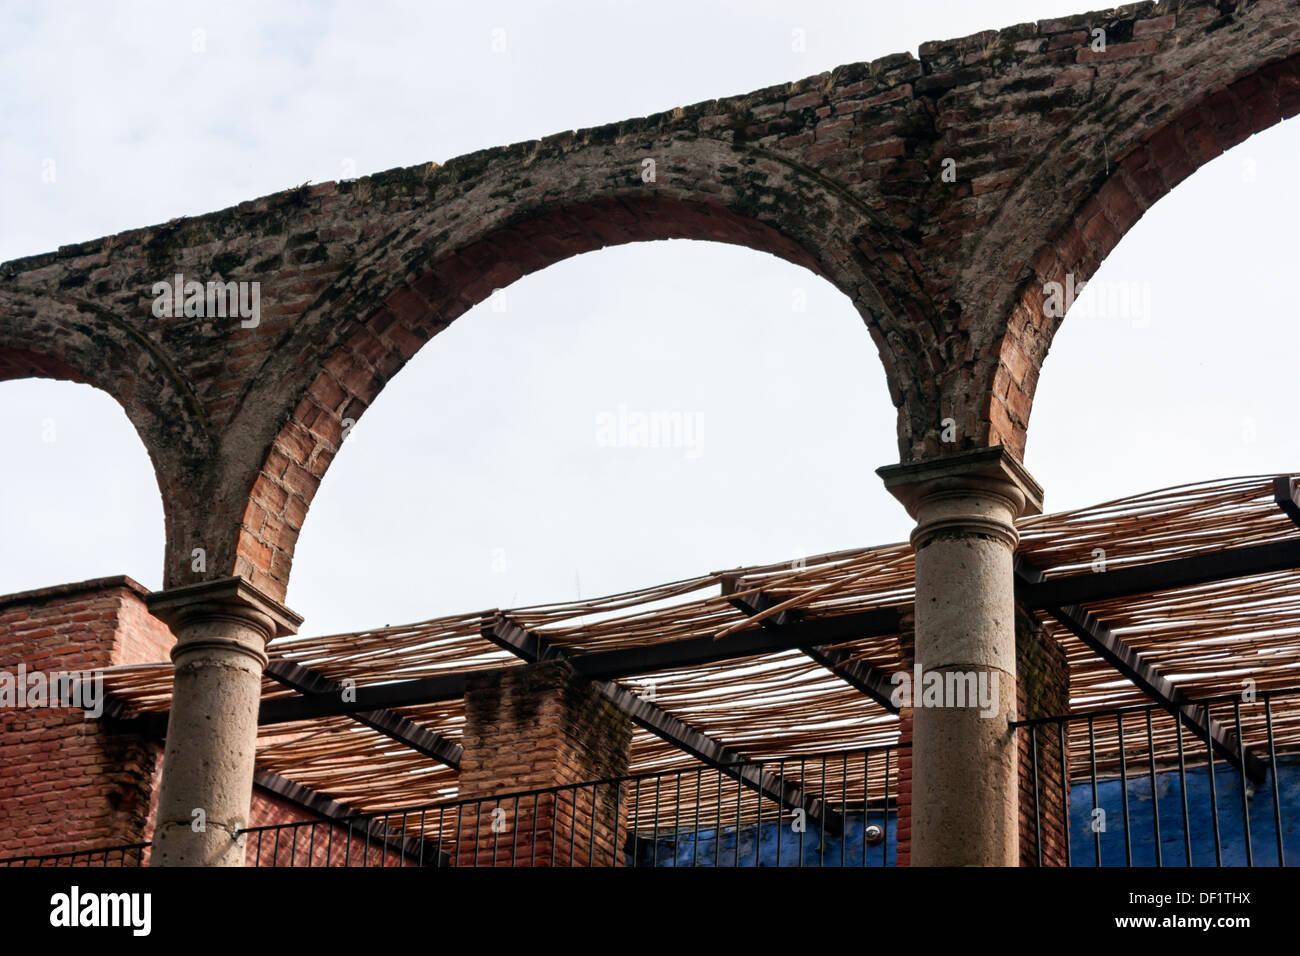 Brick Arches Stone Columns And A Rustic Sun Screen On An